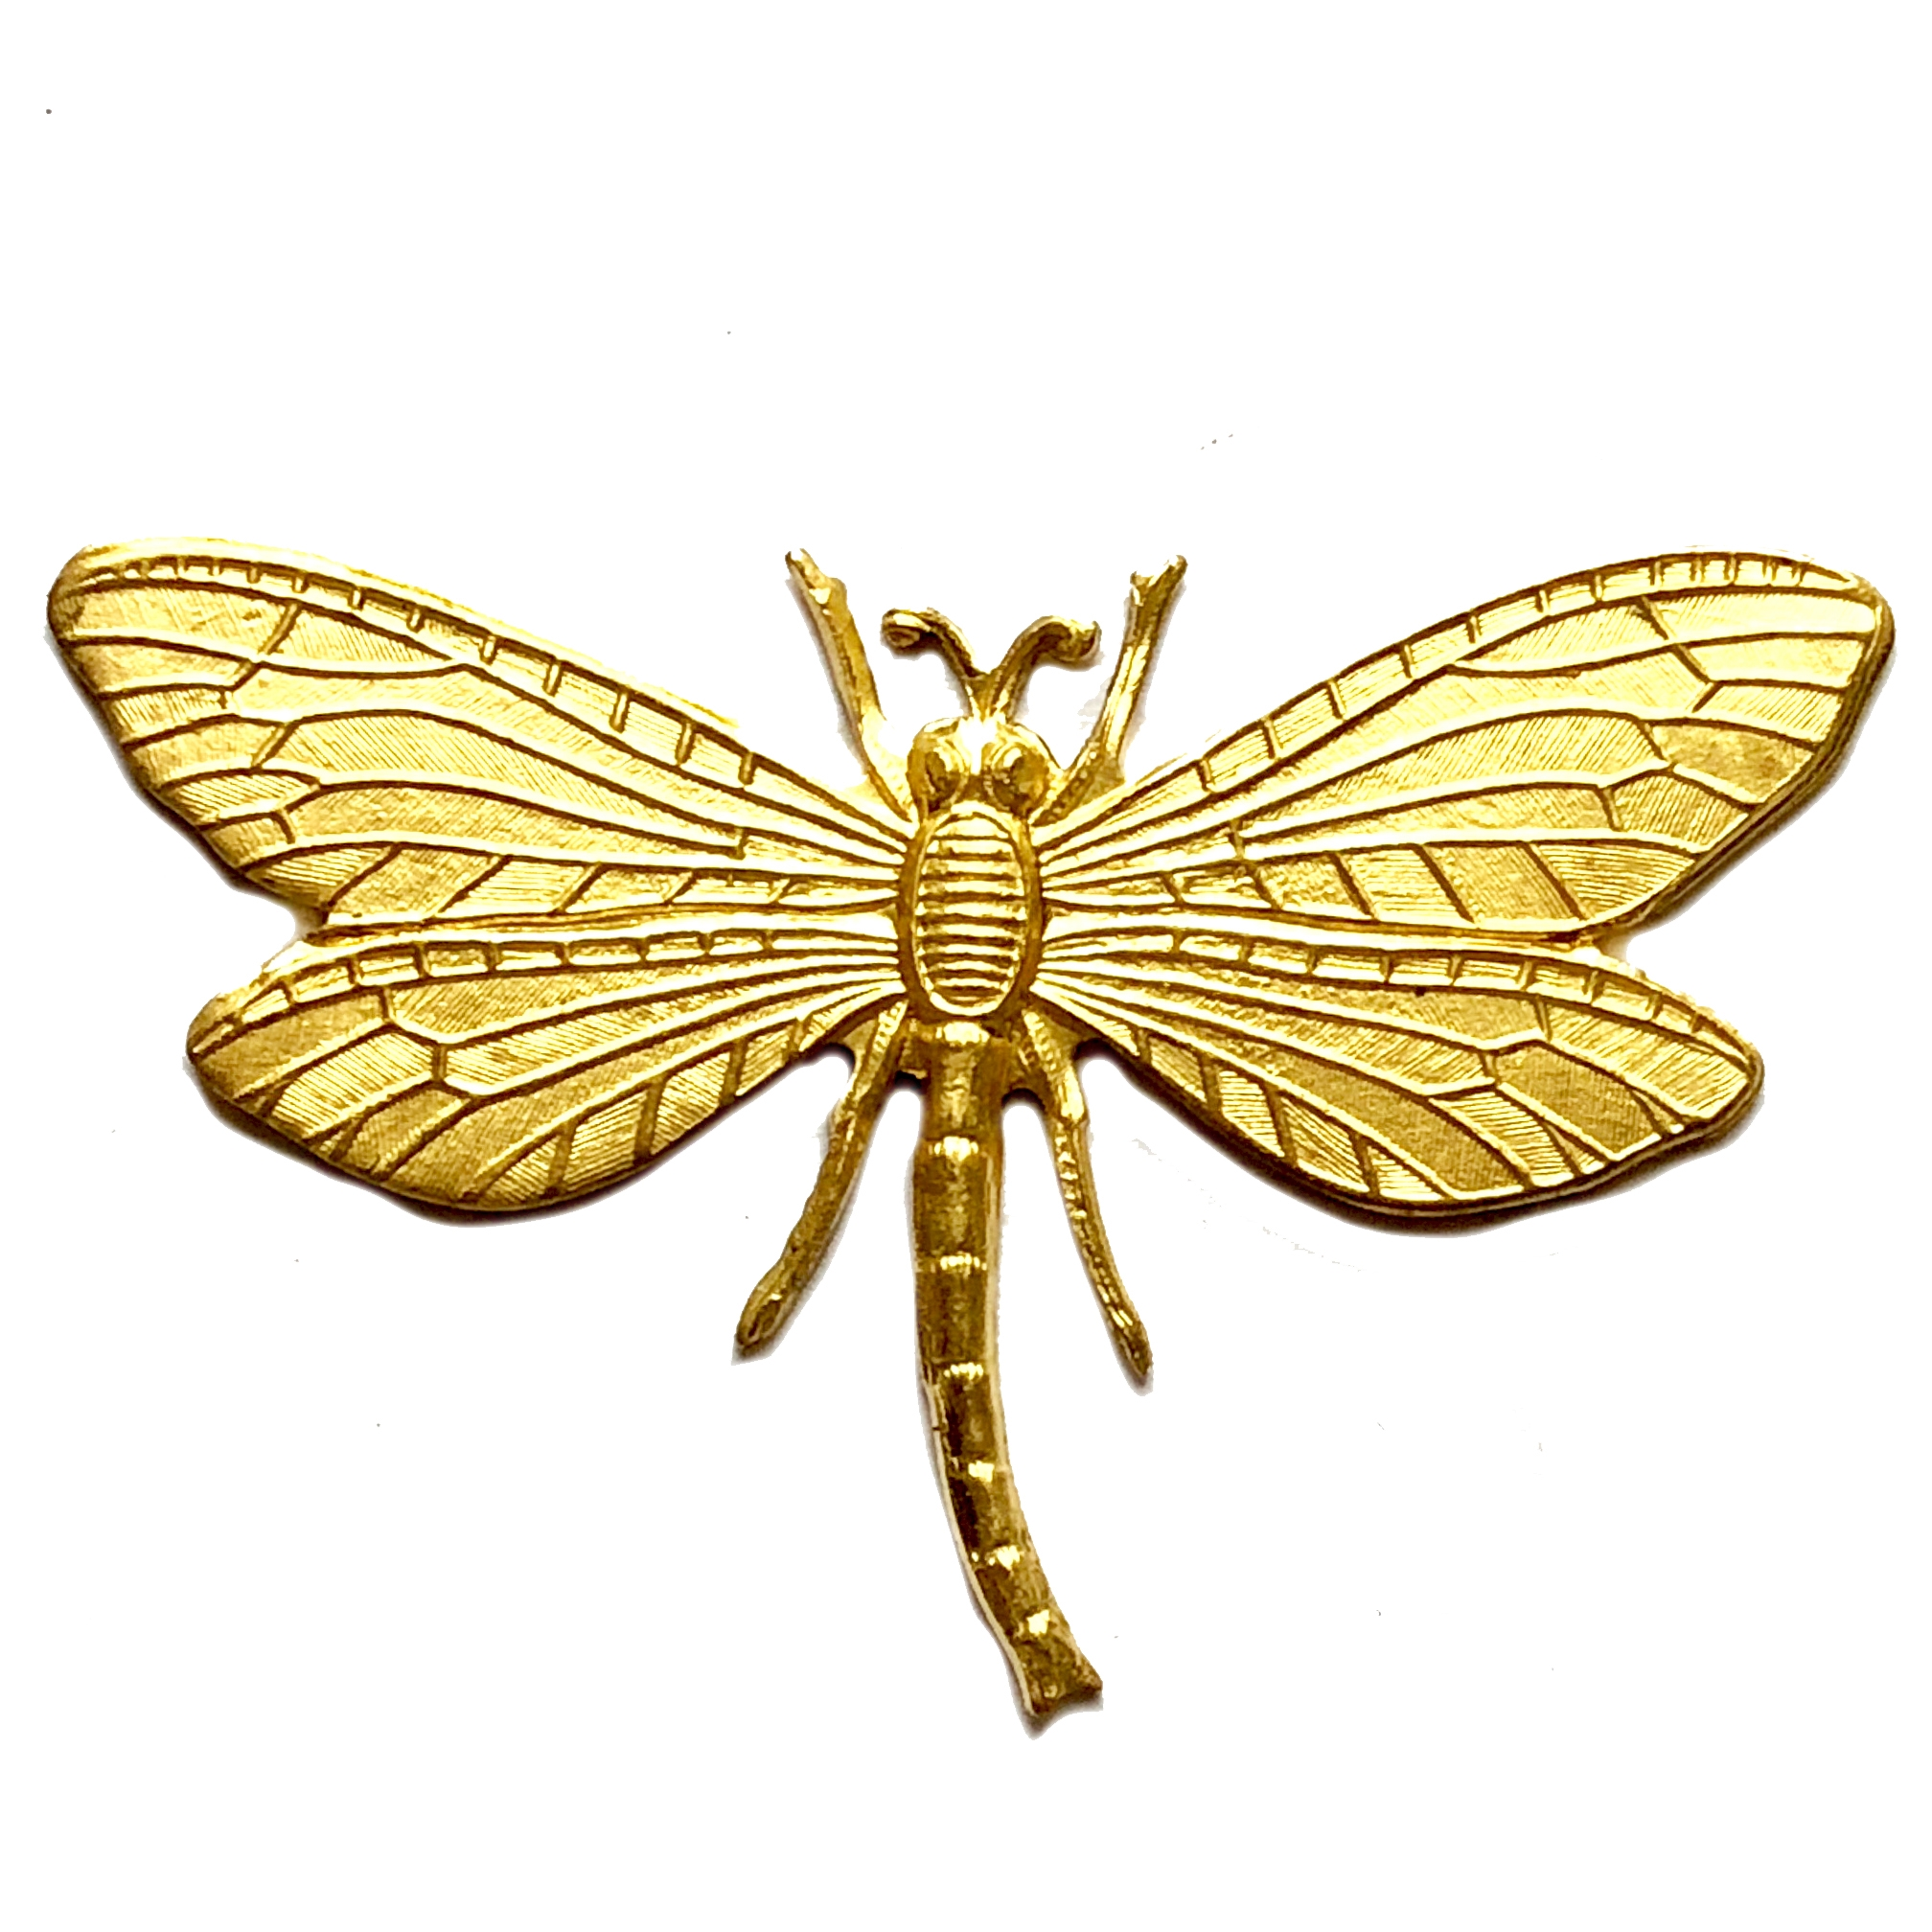 brass dragonflies, brass insects, raw brass, 06168, B'sue Boutiques, nickel free jewelry supplies, vintage jewelry supplies, US made jewelry supplies, dragonfly jewelry